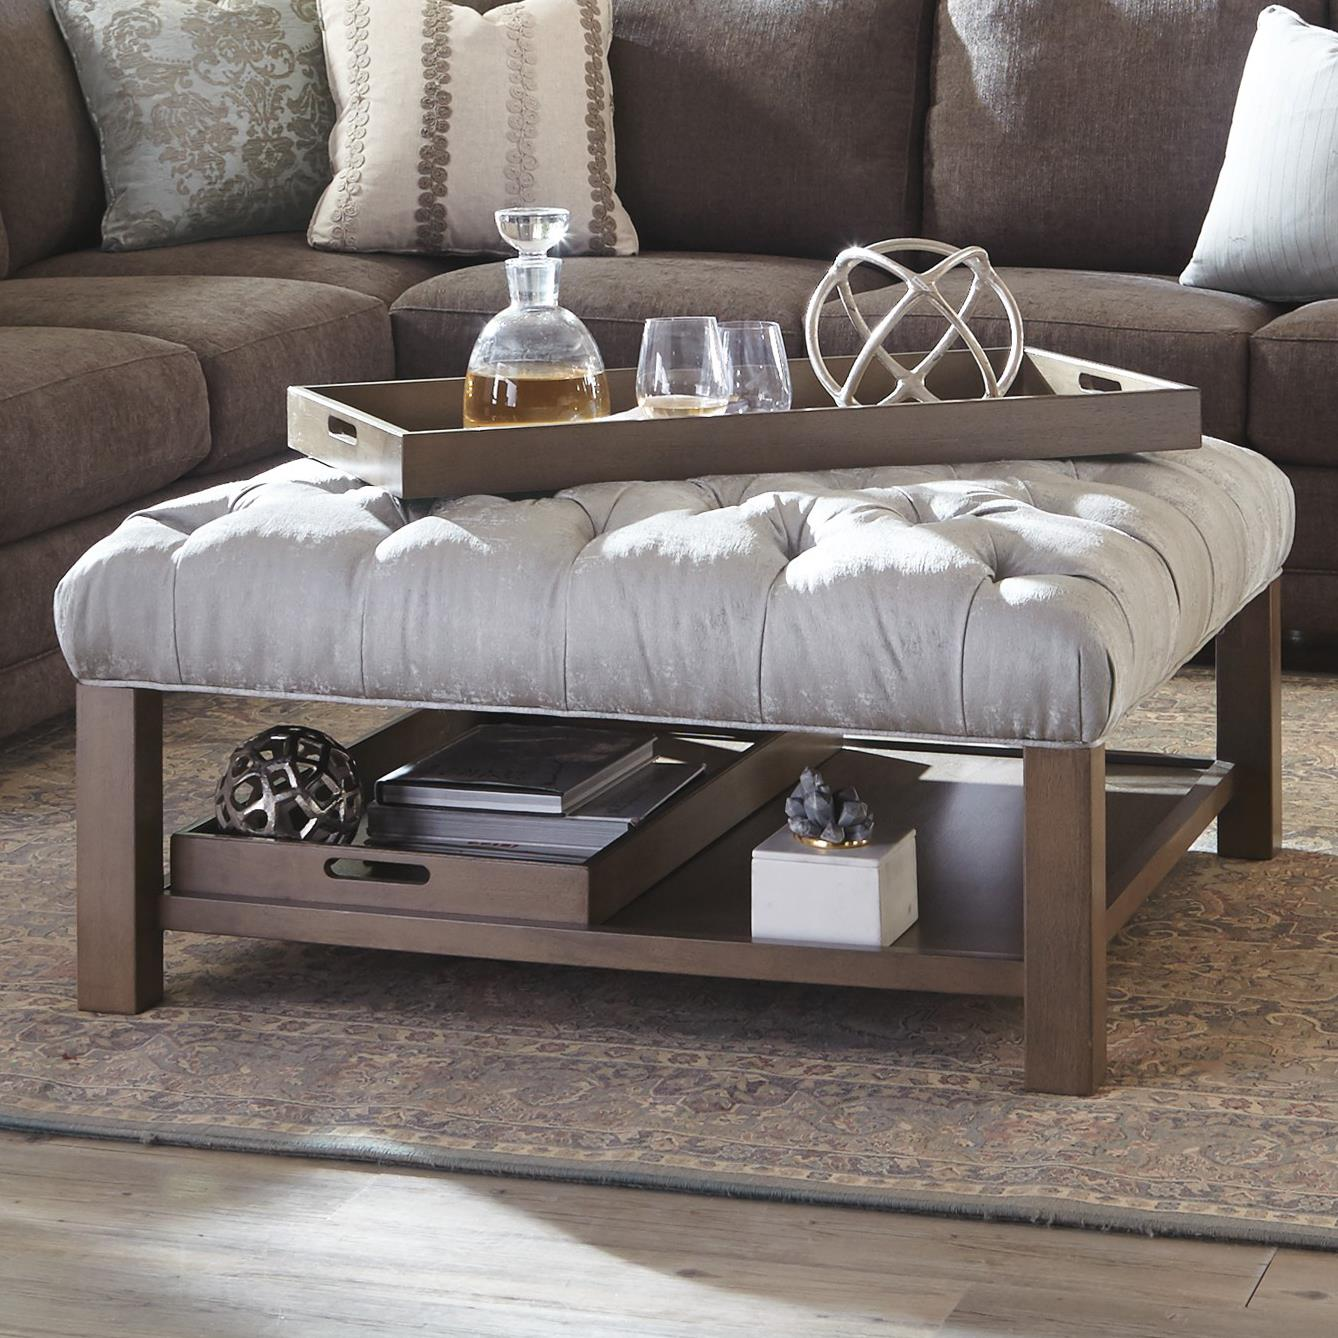 Cocktail ottoman with button tufting and storage trays by craftmaster wolf and gardiner wolf Ottoman coffee table trays